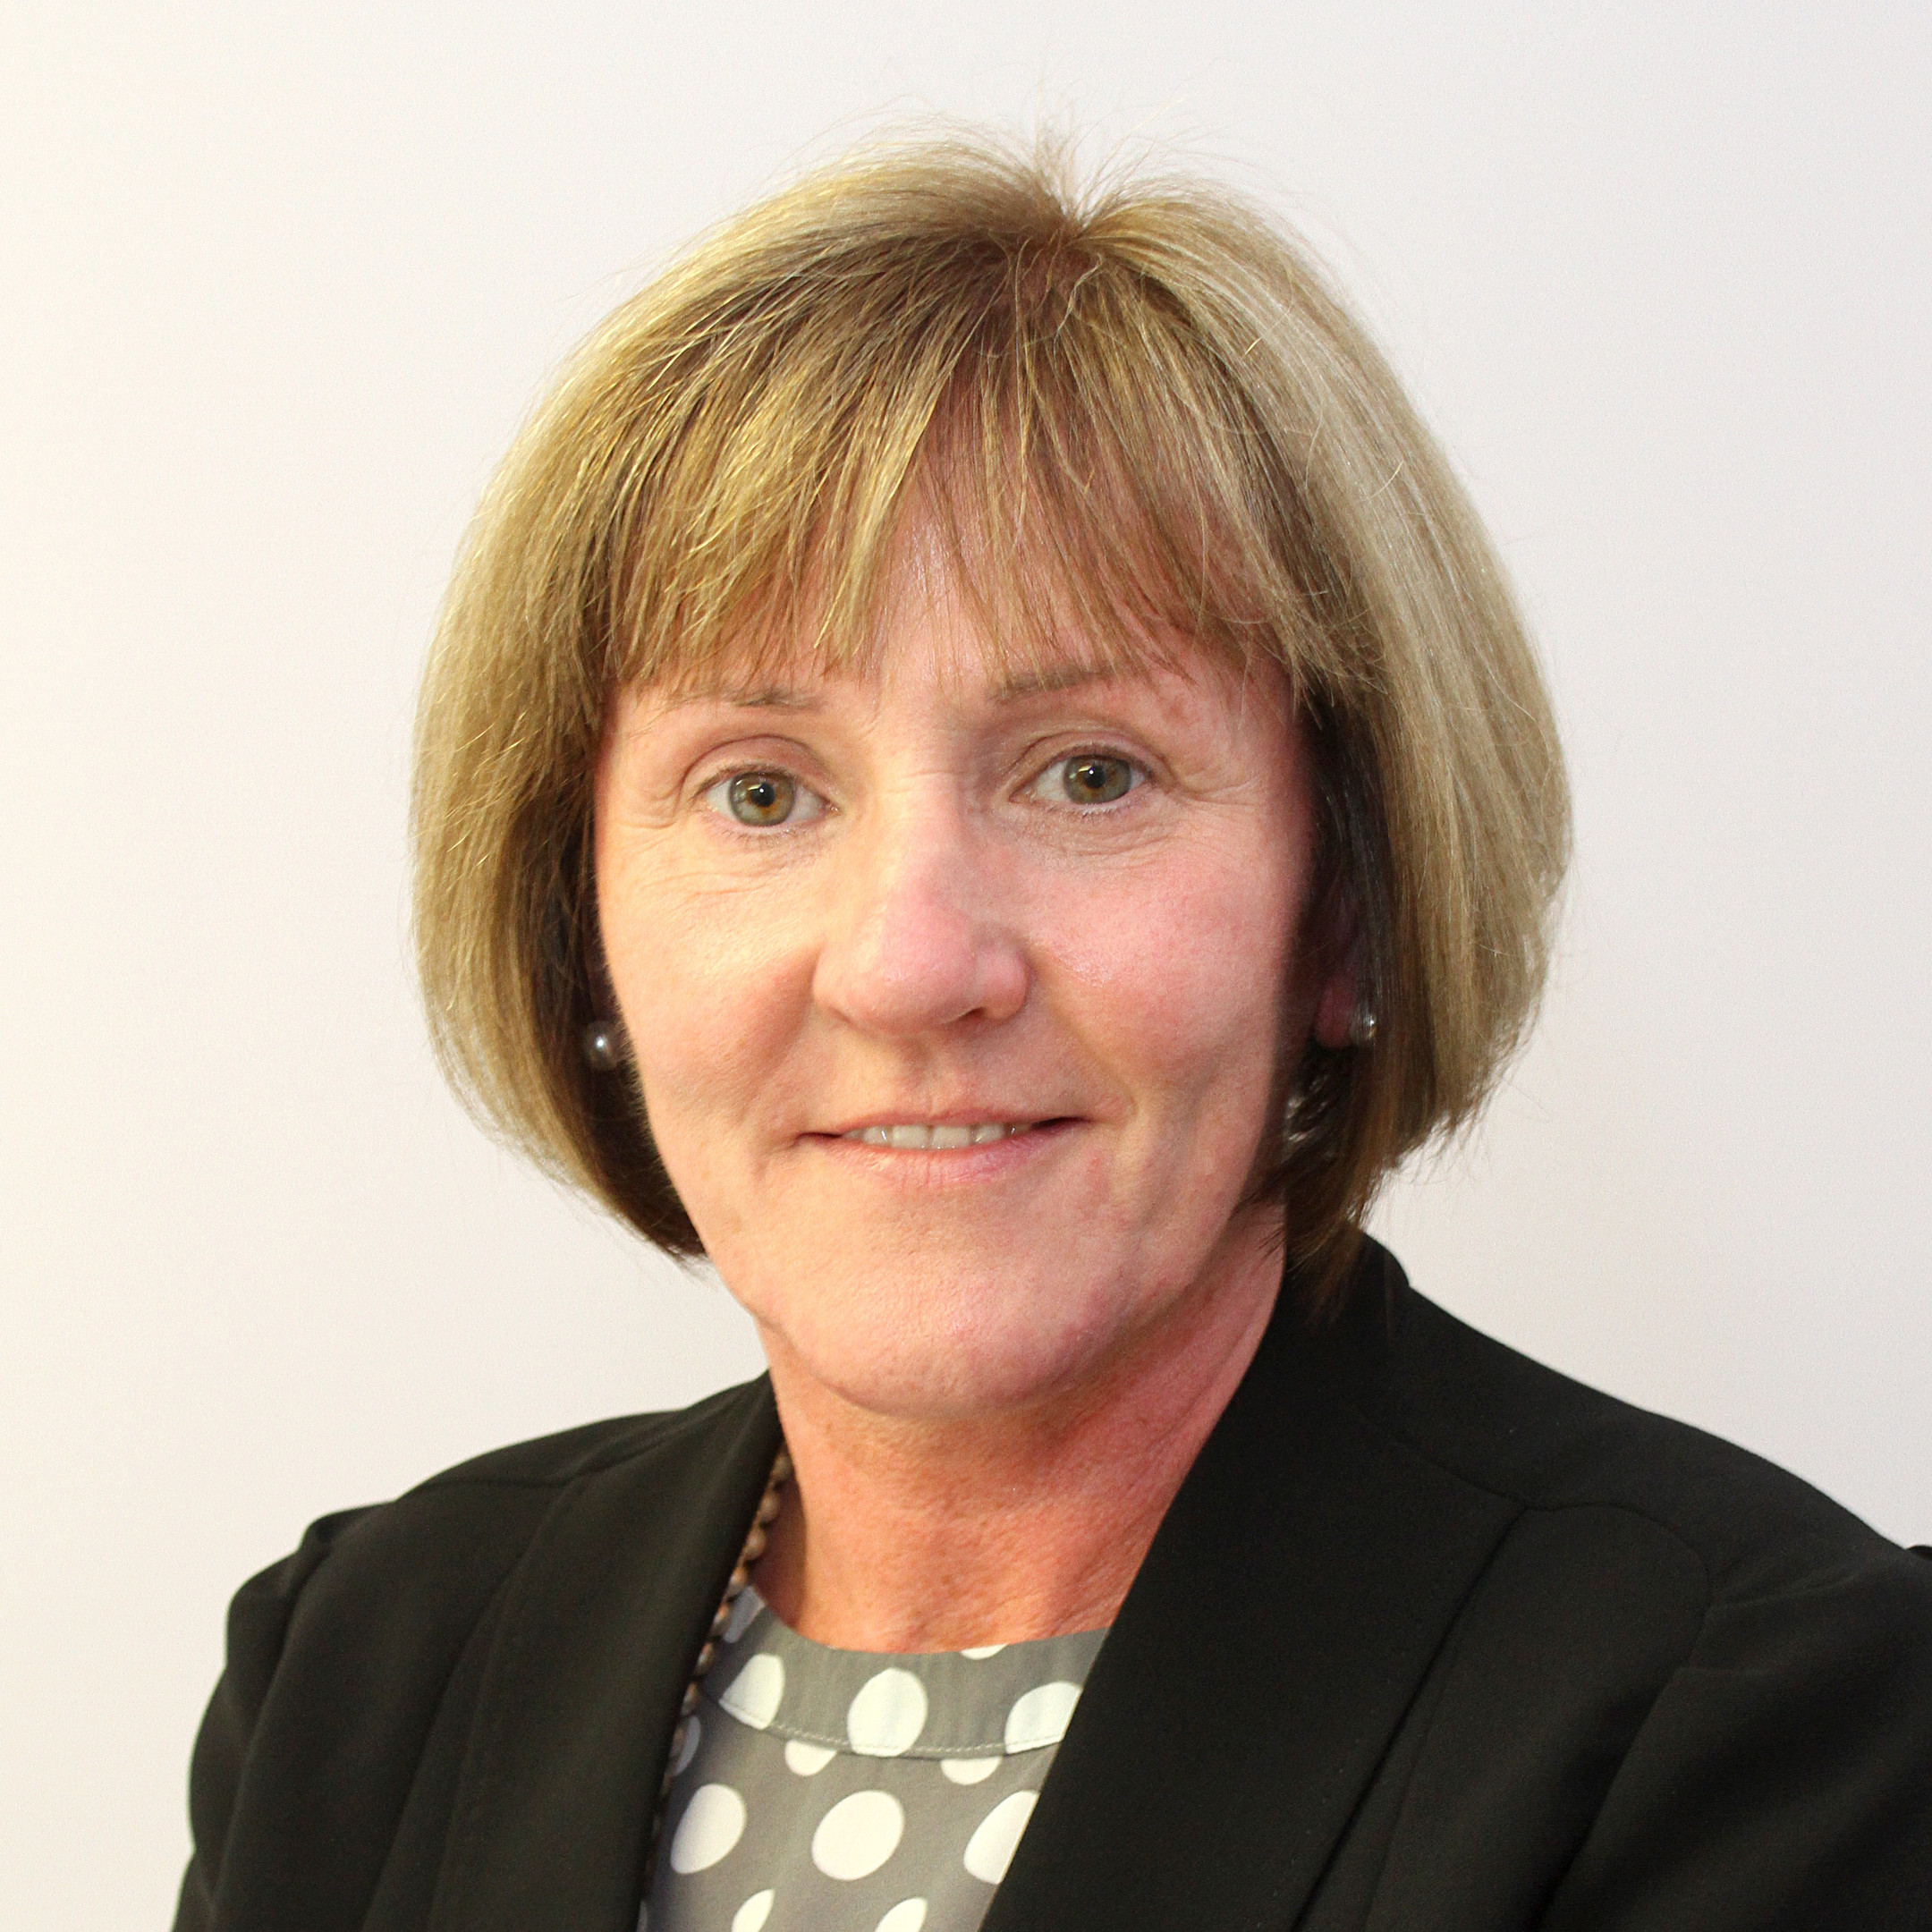 Cathie Cowan, chief executive of NHS Orkney